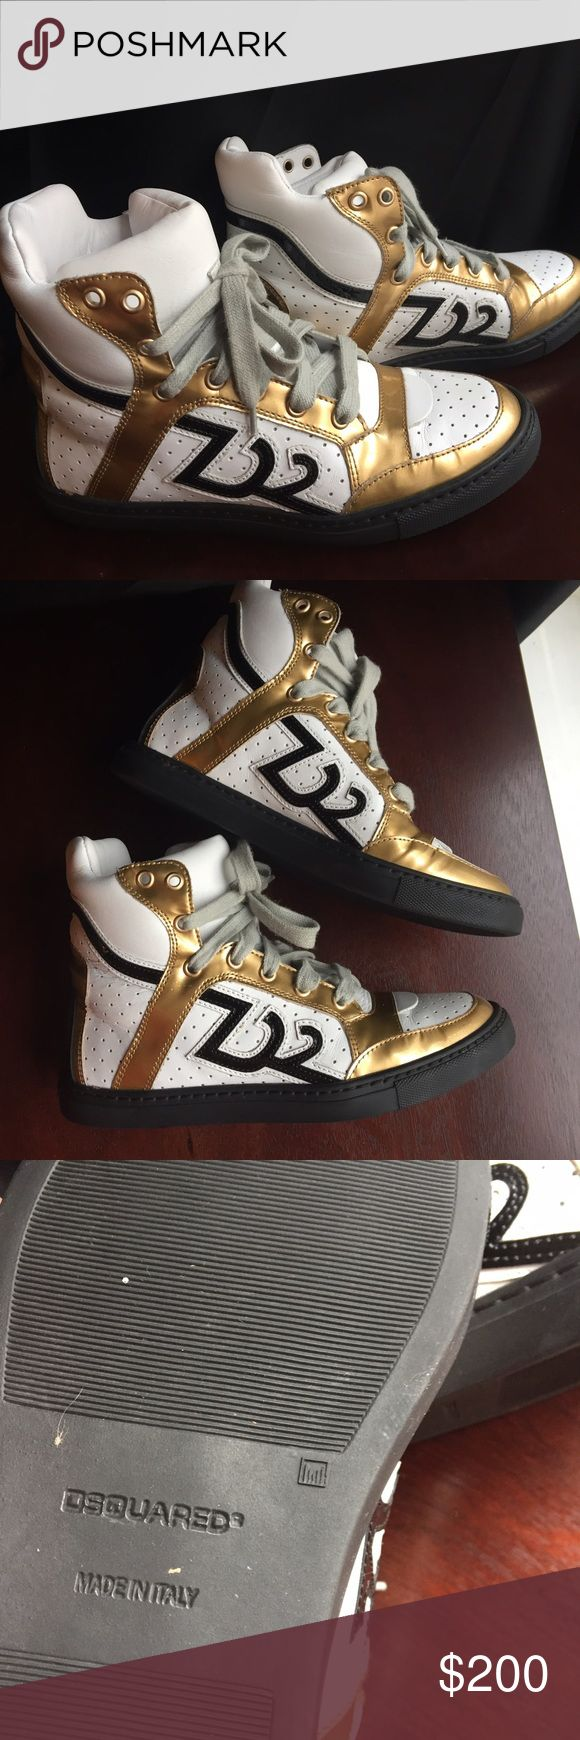 Dsquared sneakers Worn 2x times. Excellent condition. DSQUARED Shoes Sneakers